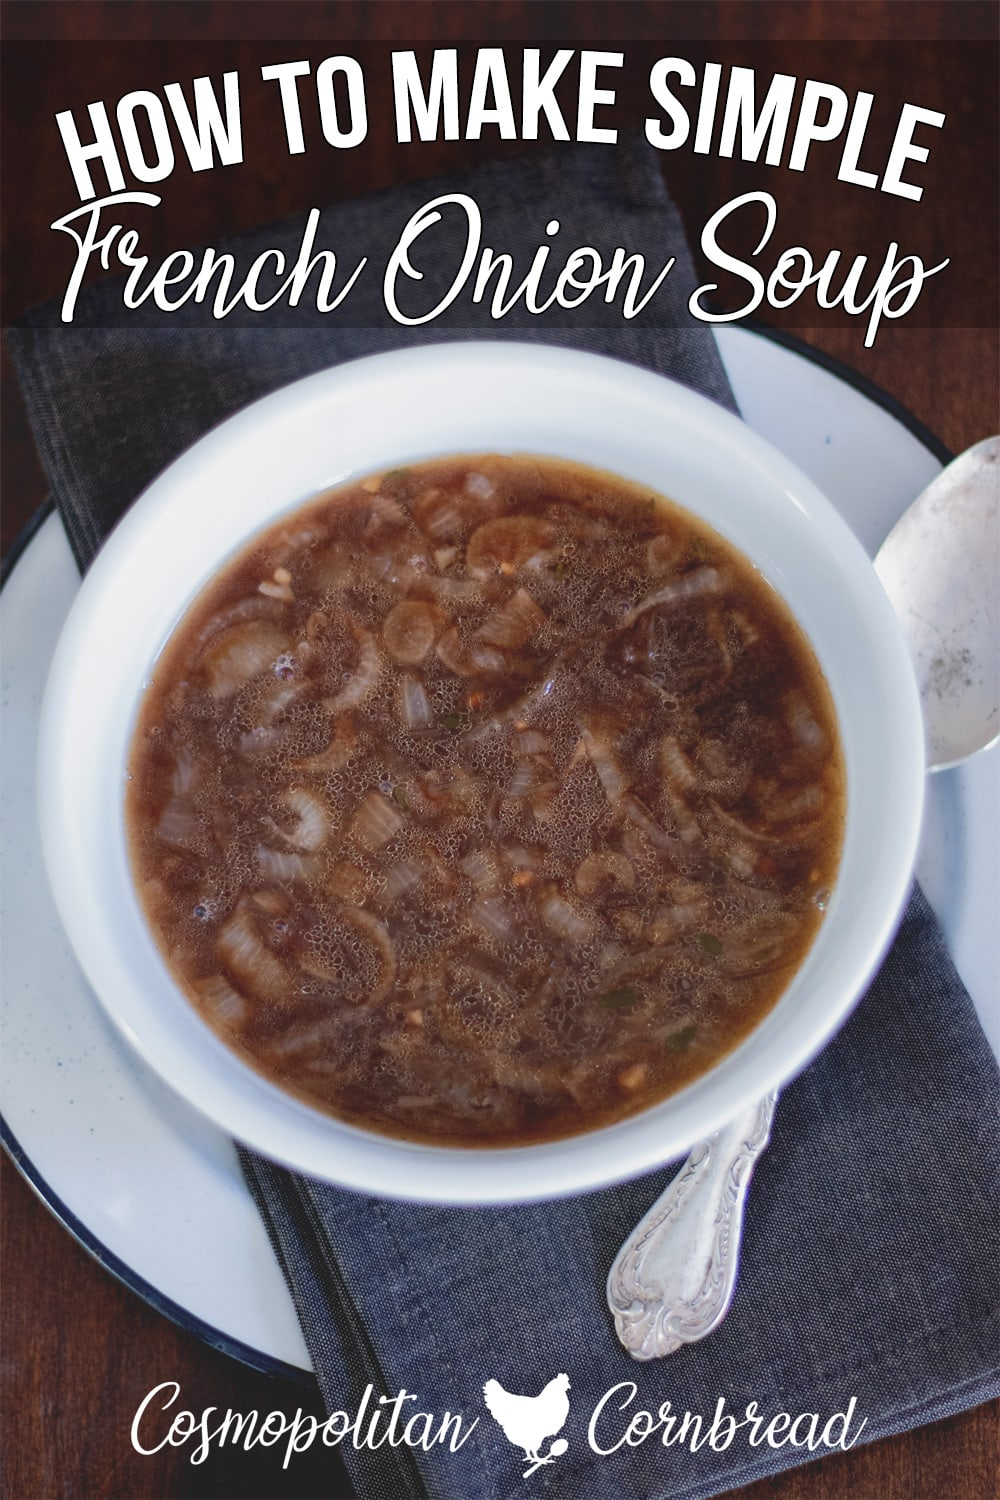 Easy French Onion Soup - A delicious onion soup with caramelized onions and a rich broth.